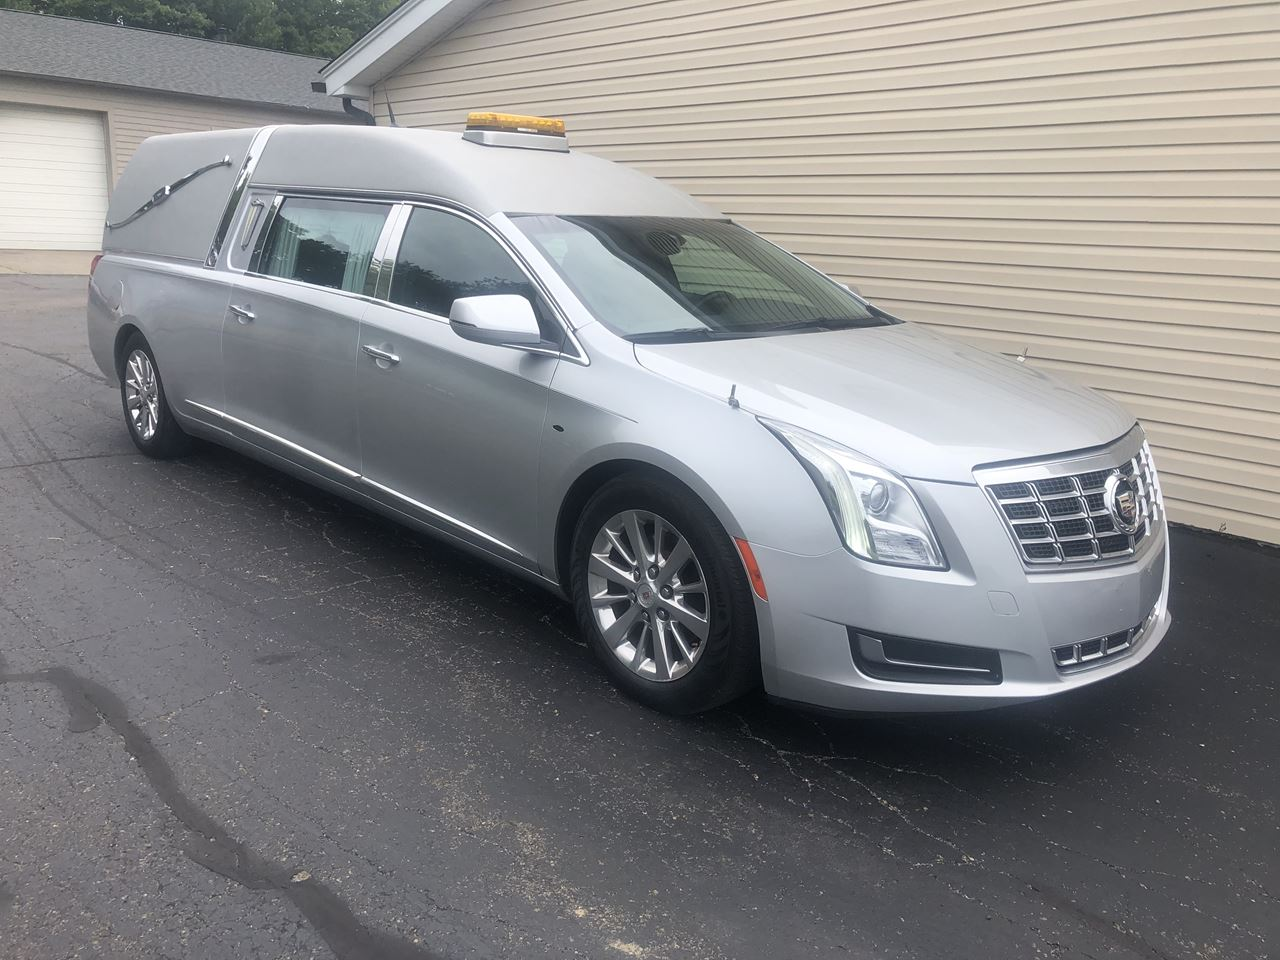 2014 Cadillac Eagle Ultimate Hearse 21 2